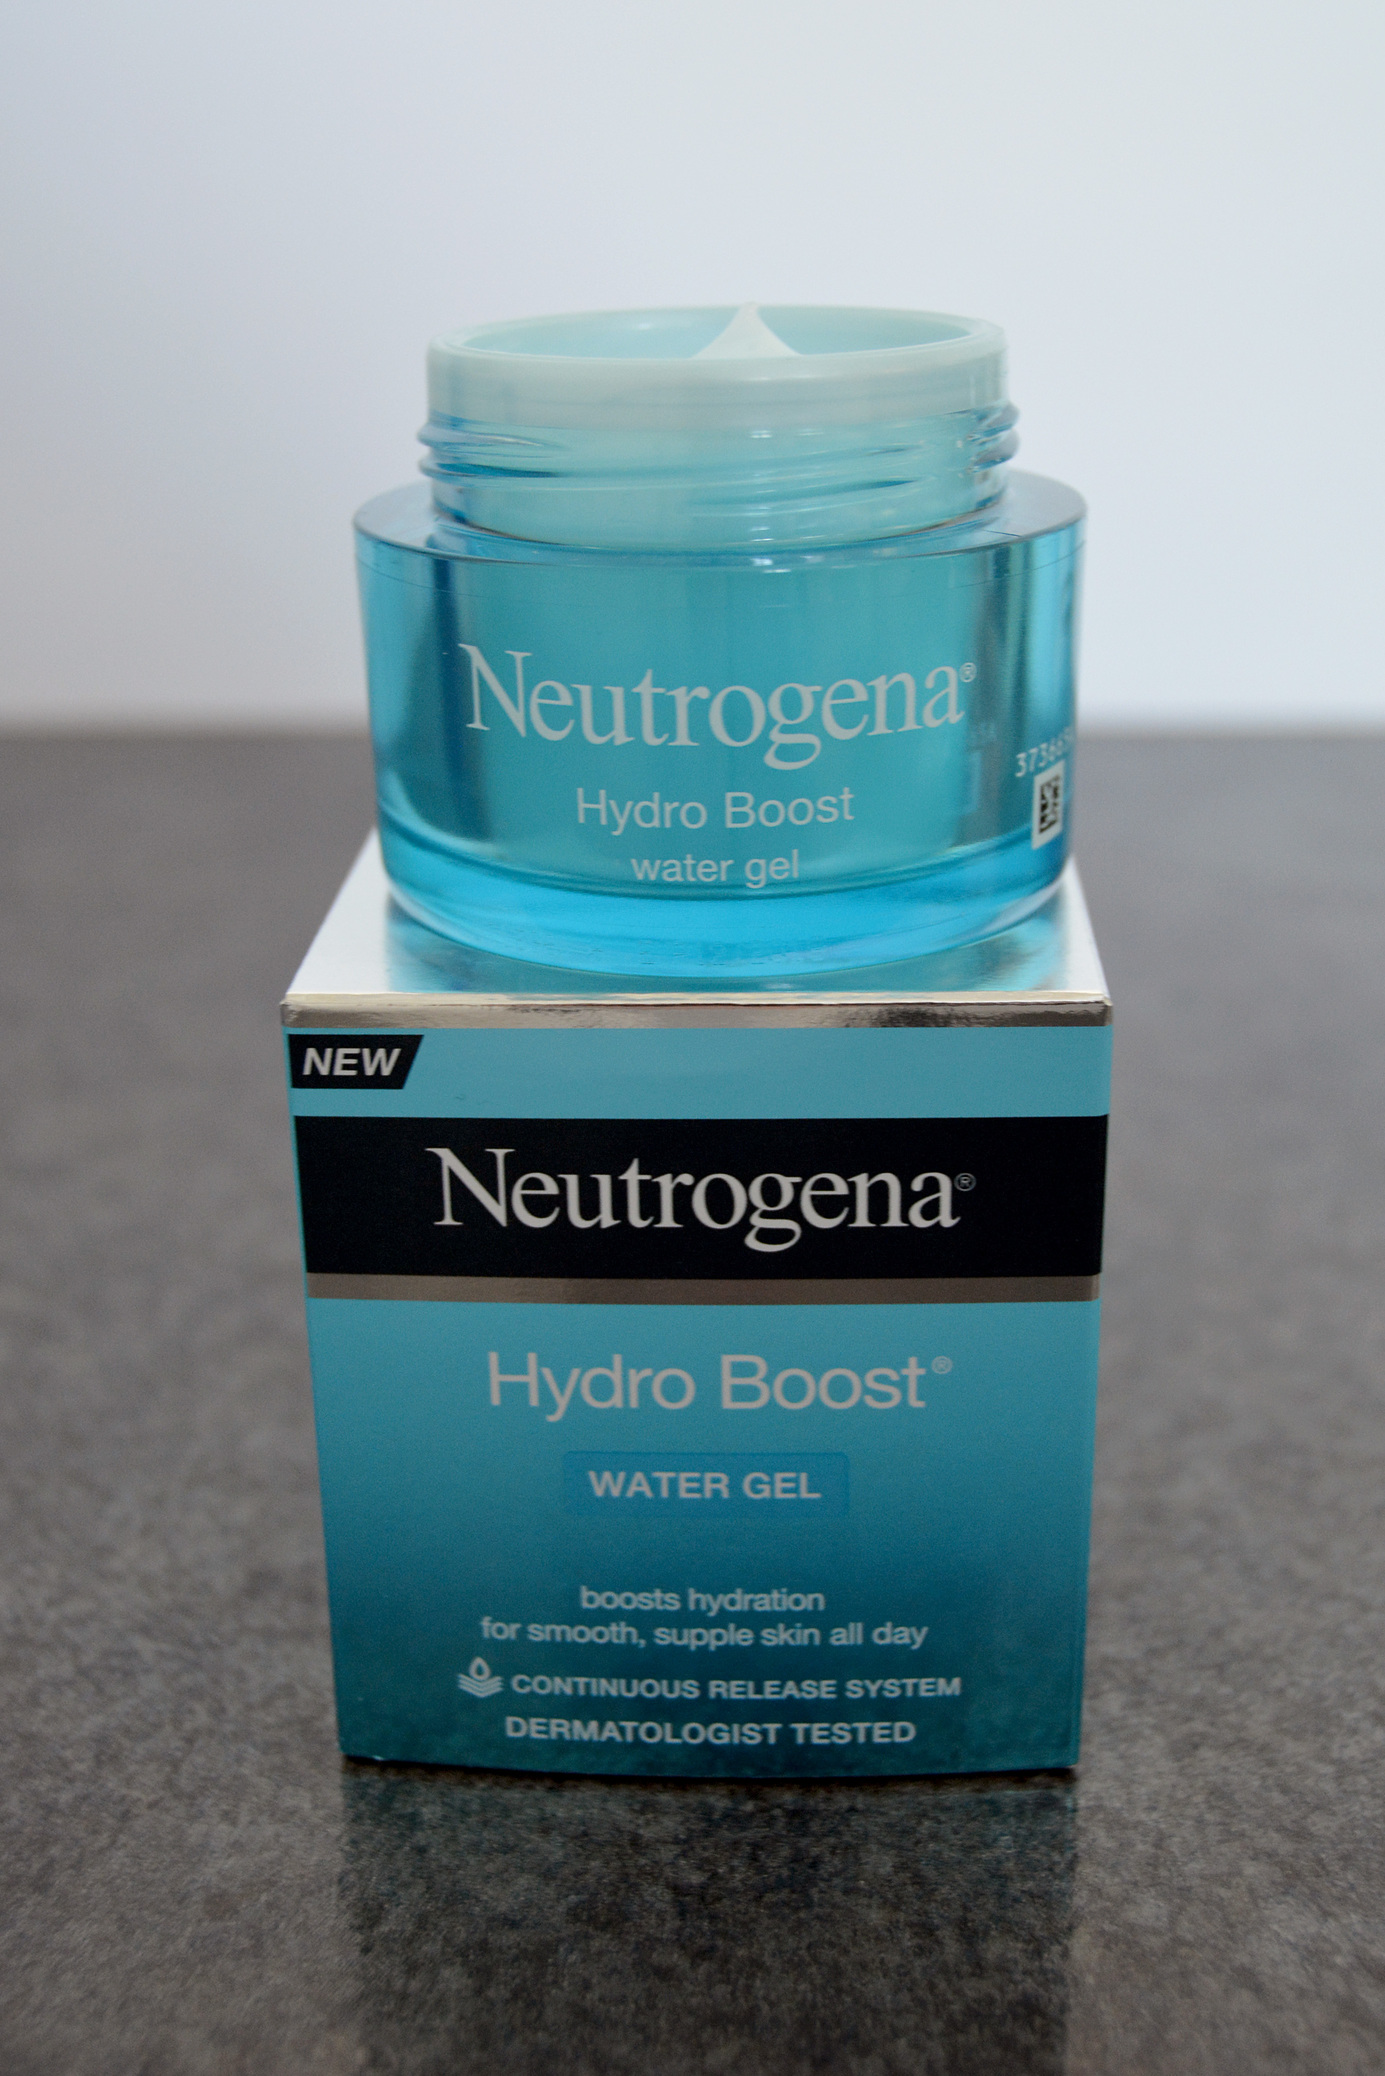 neutrogena-hydro-boost-3